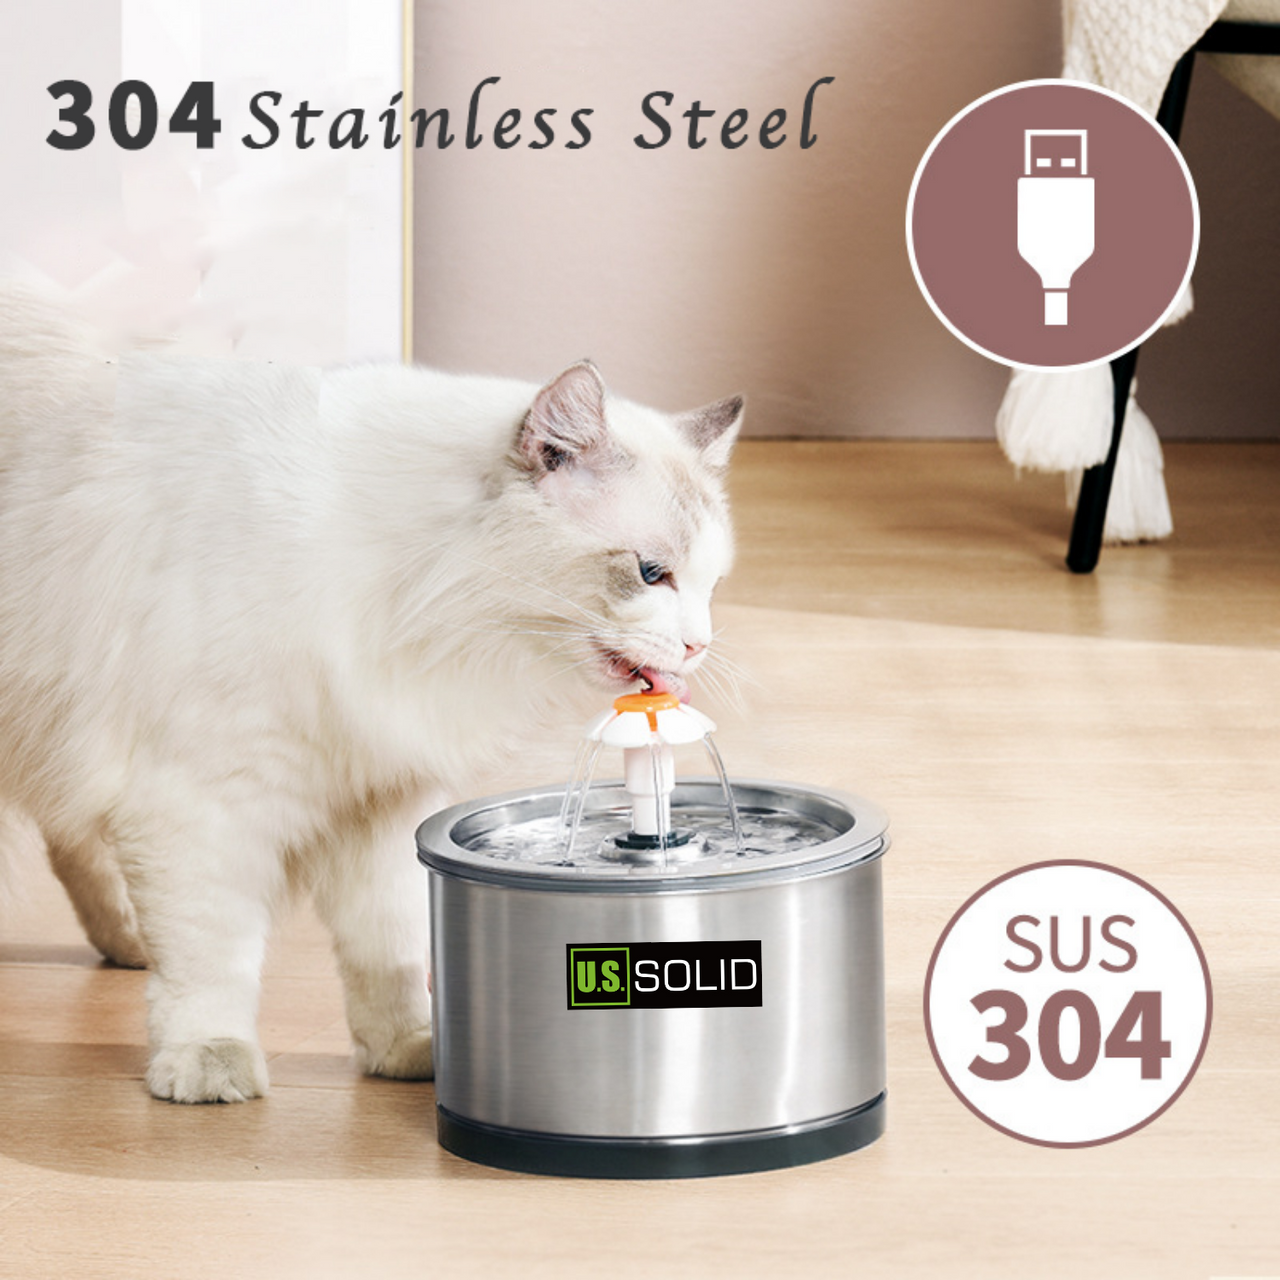 U.S. Solid Cat Water Fountain - Automatic Pet Water Fountain 304 Stainless Steel Dog Water Dispenser with LED Light, 2.5L